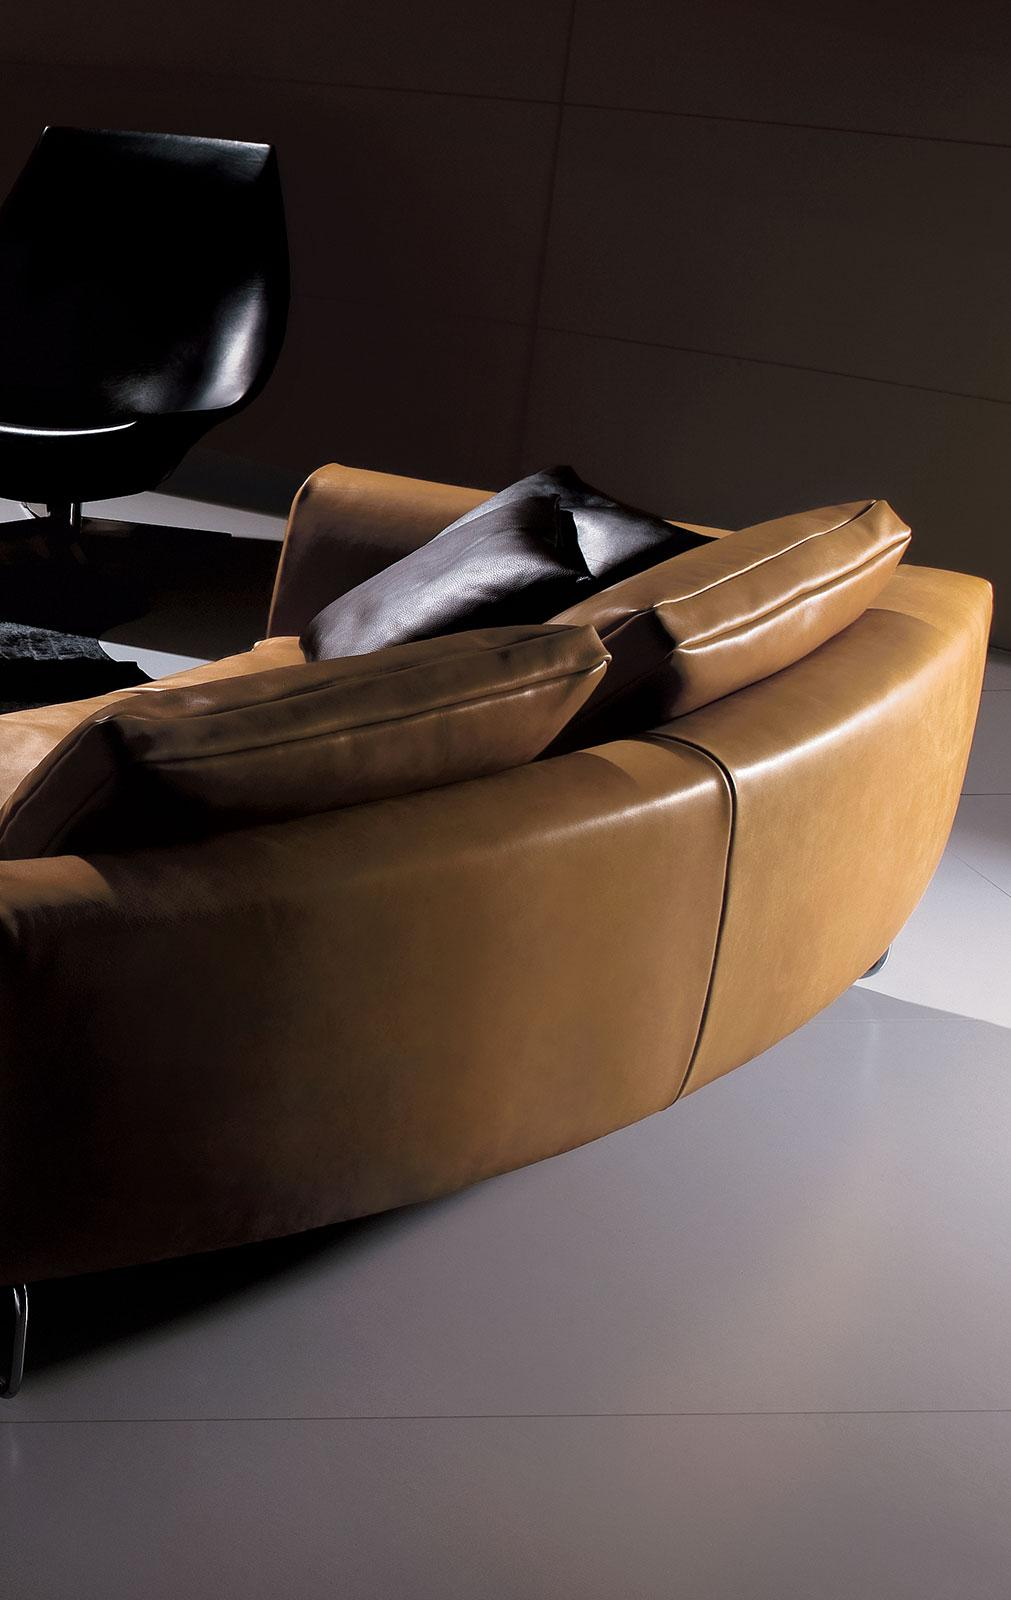 Add-Look Round is a luxurious sofa designed by Mauro Lipparini. This round leather sofa with solid wood frame, goose feathers padding and leather covering is perfect for any room.